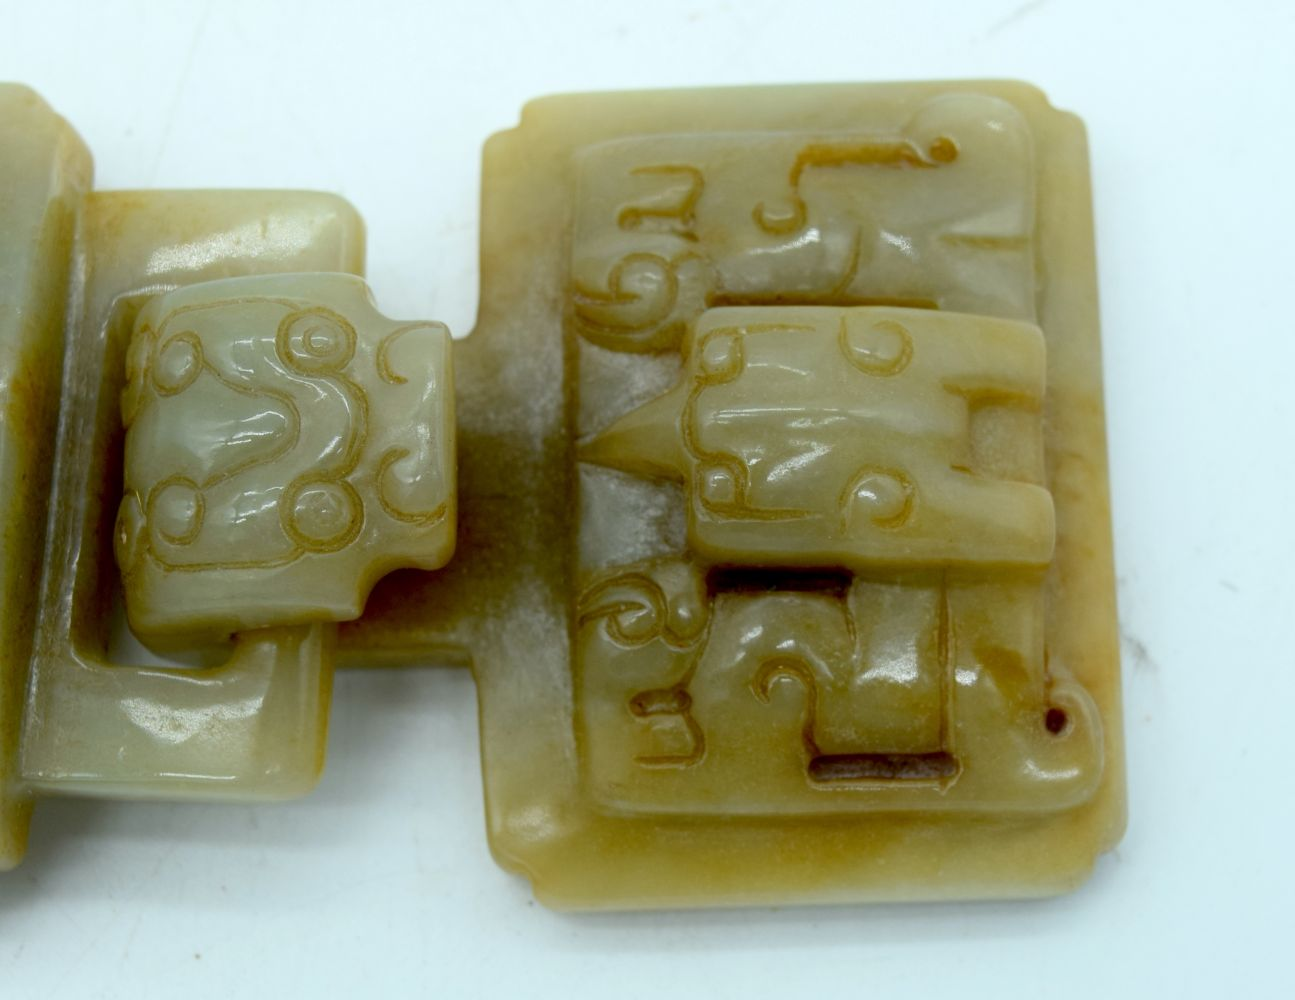 A Chinese Jade belt buckle 10 x 6.5cm. - Image 3 of 5